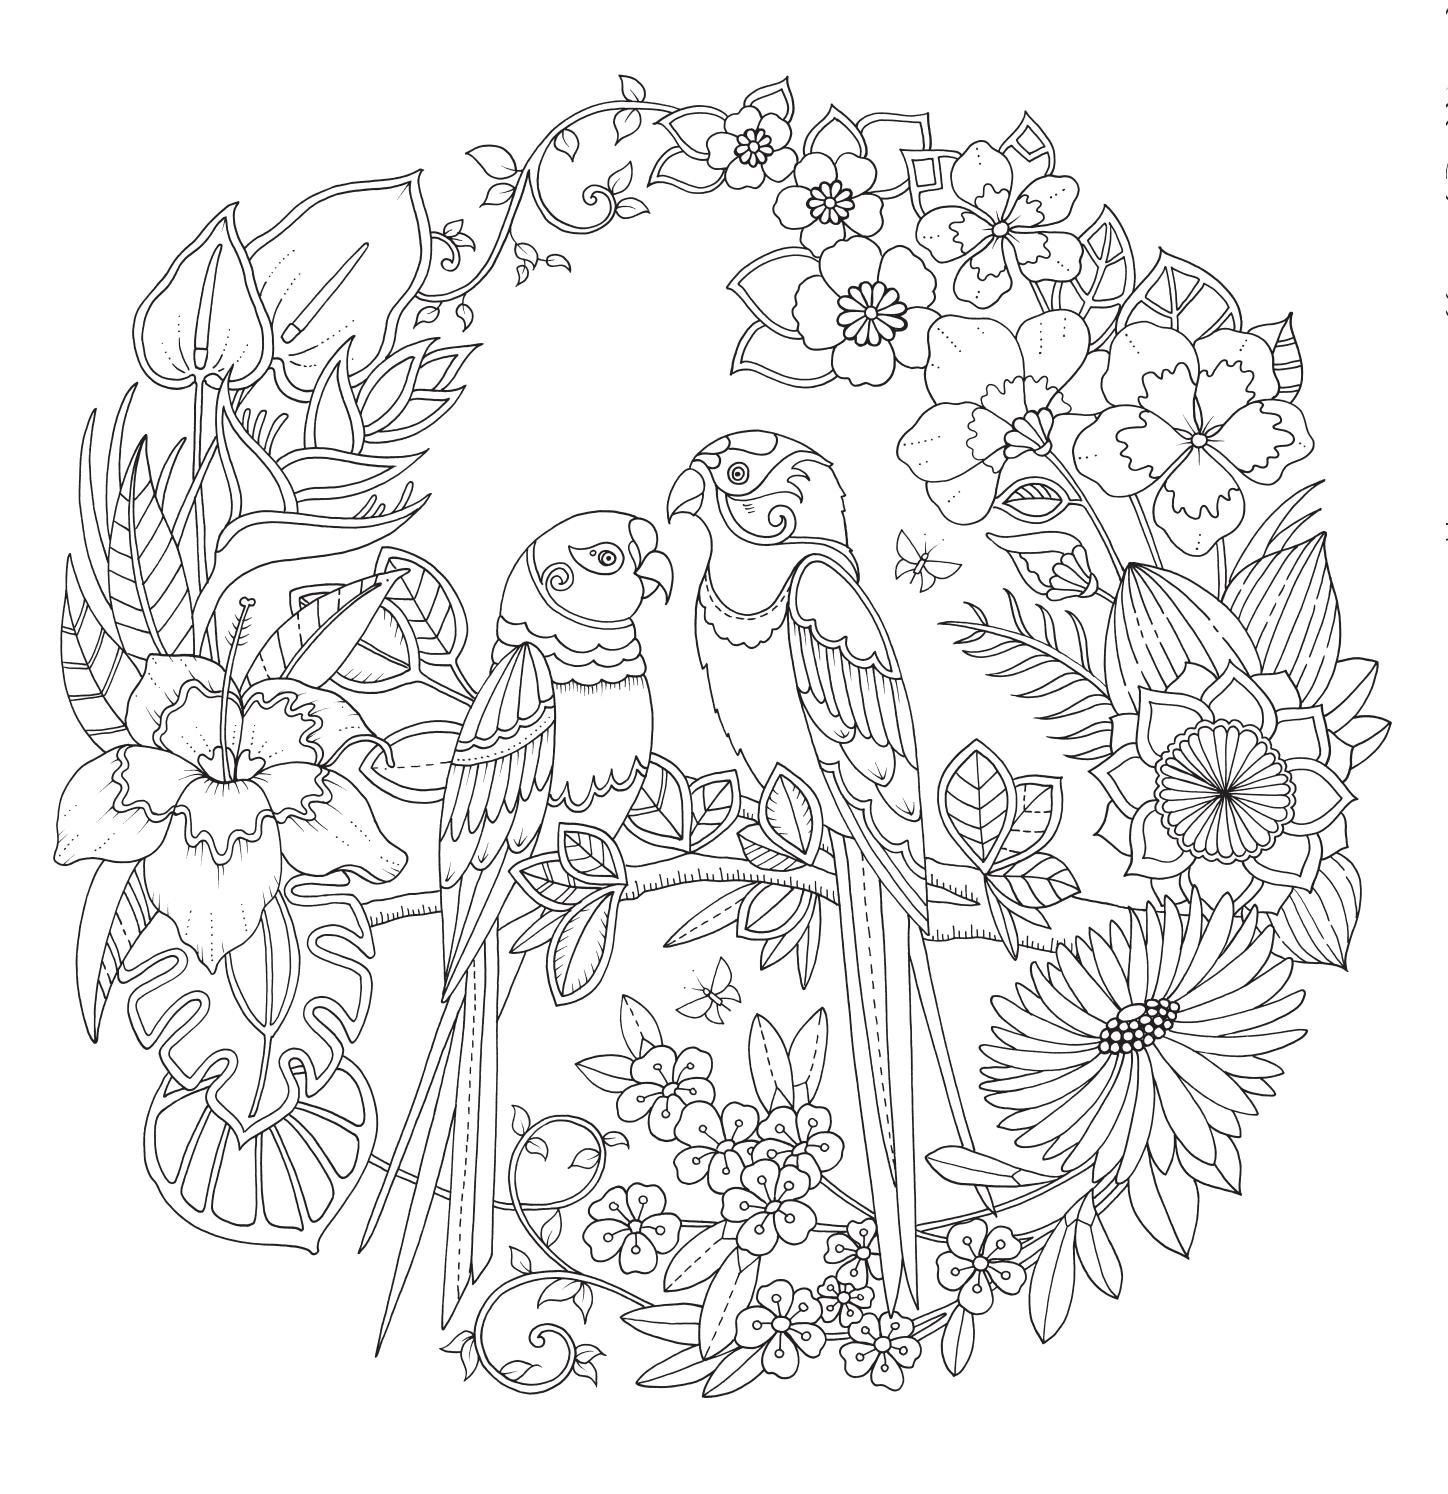 Issuu Is A Digital Publishing Platform That Makes It Simple To Publish Magazines Catalogs N Jungle Coloring Pages Basford Coloring Book Garden Coloring Pages